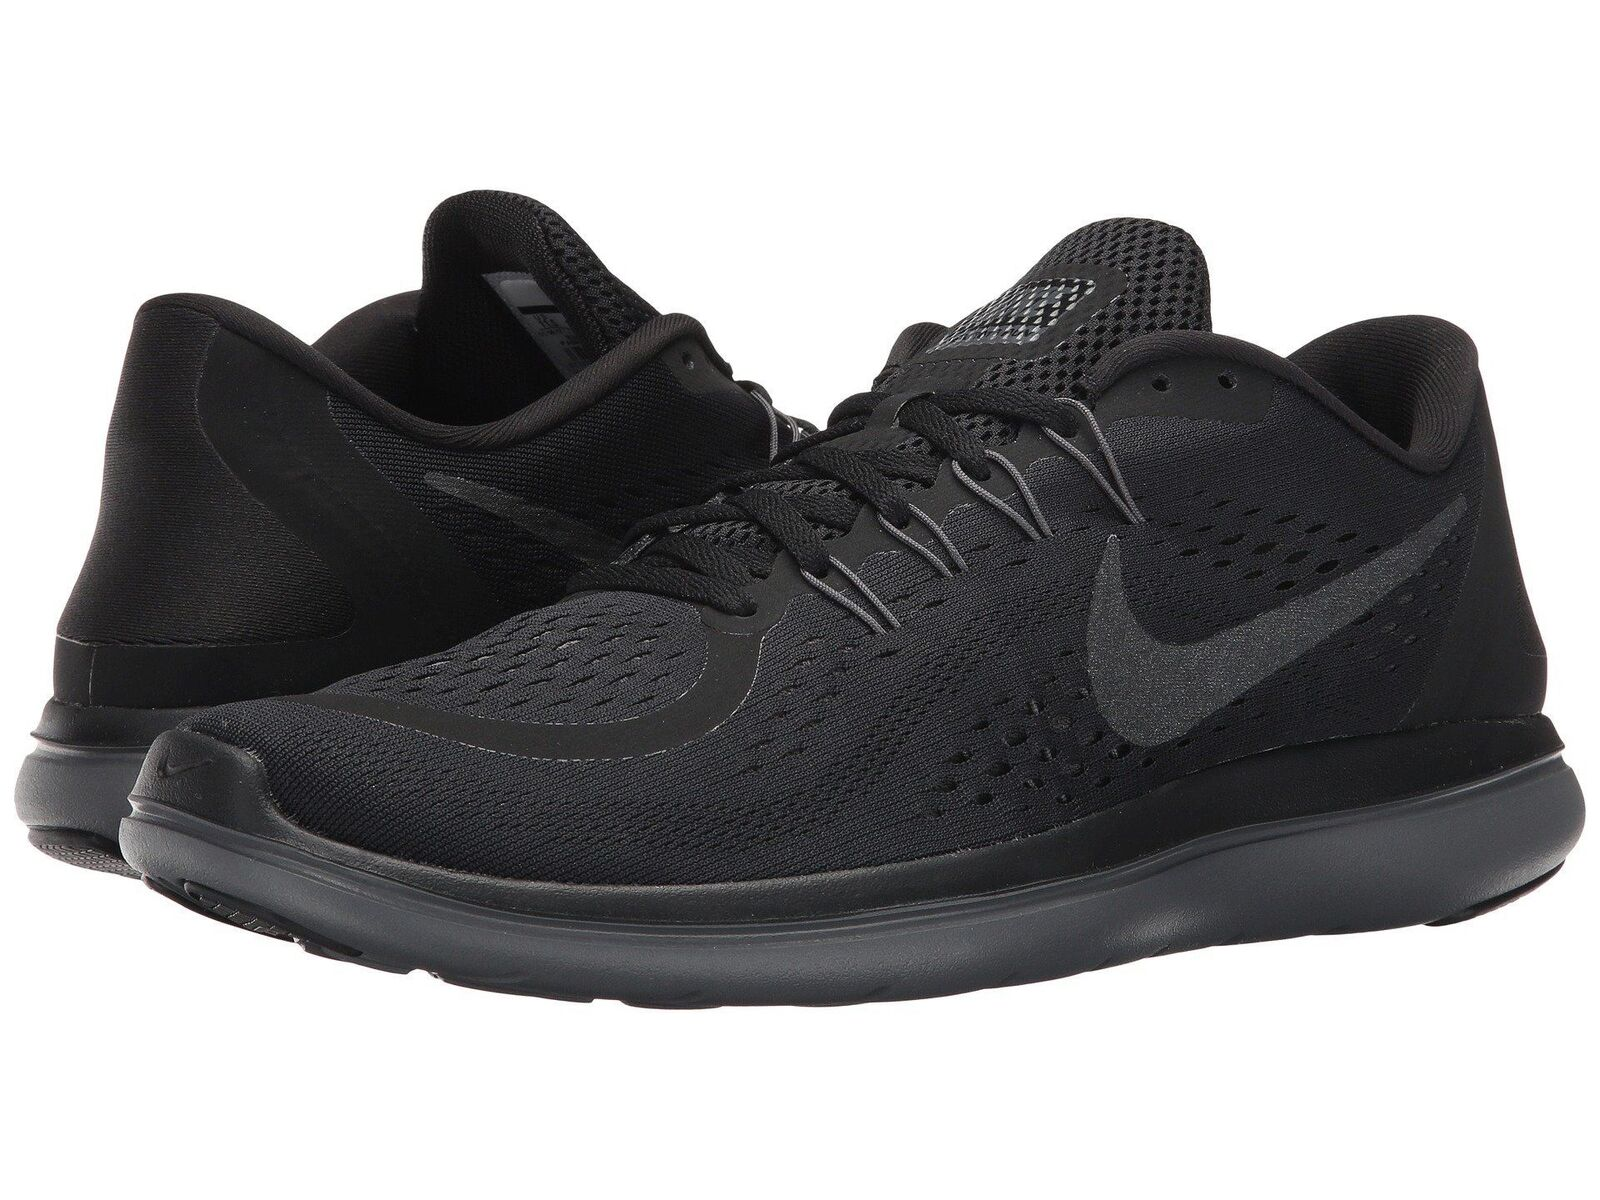 Nike Flex 2018 RN 898457005 Black Dark Gray Men's Running Shoes Brand discount best-selling model of the brand